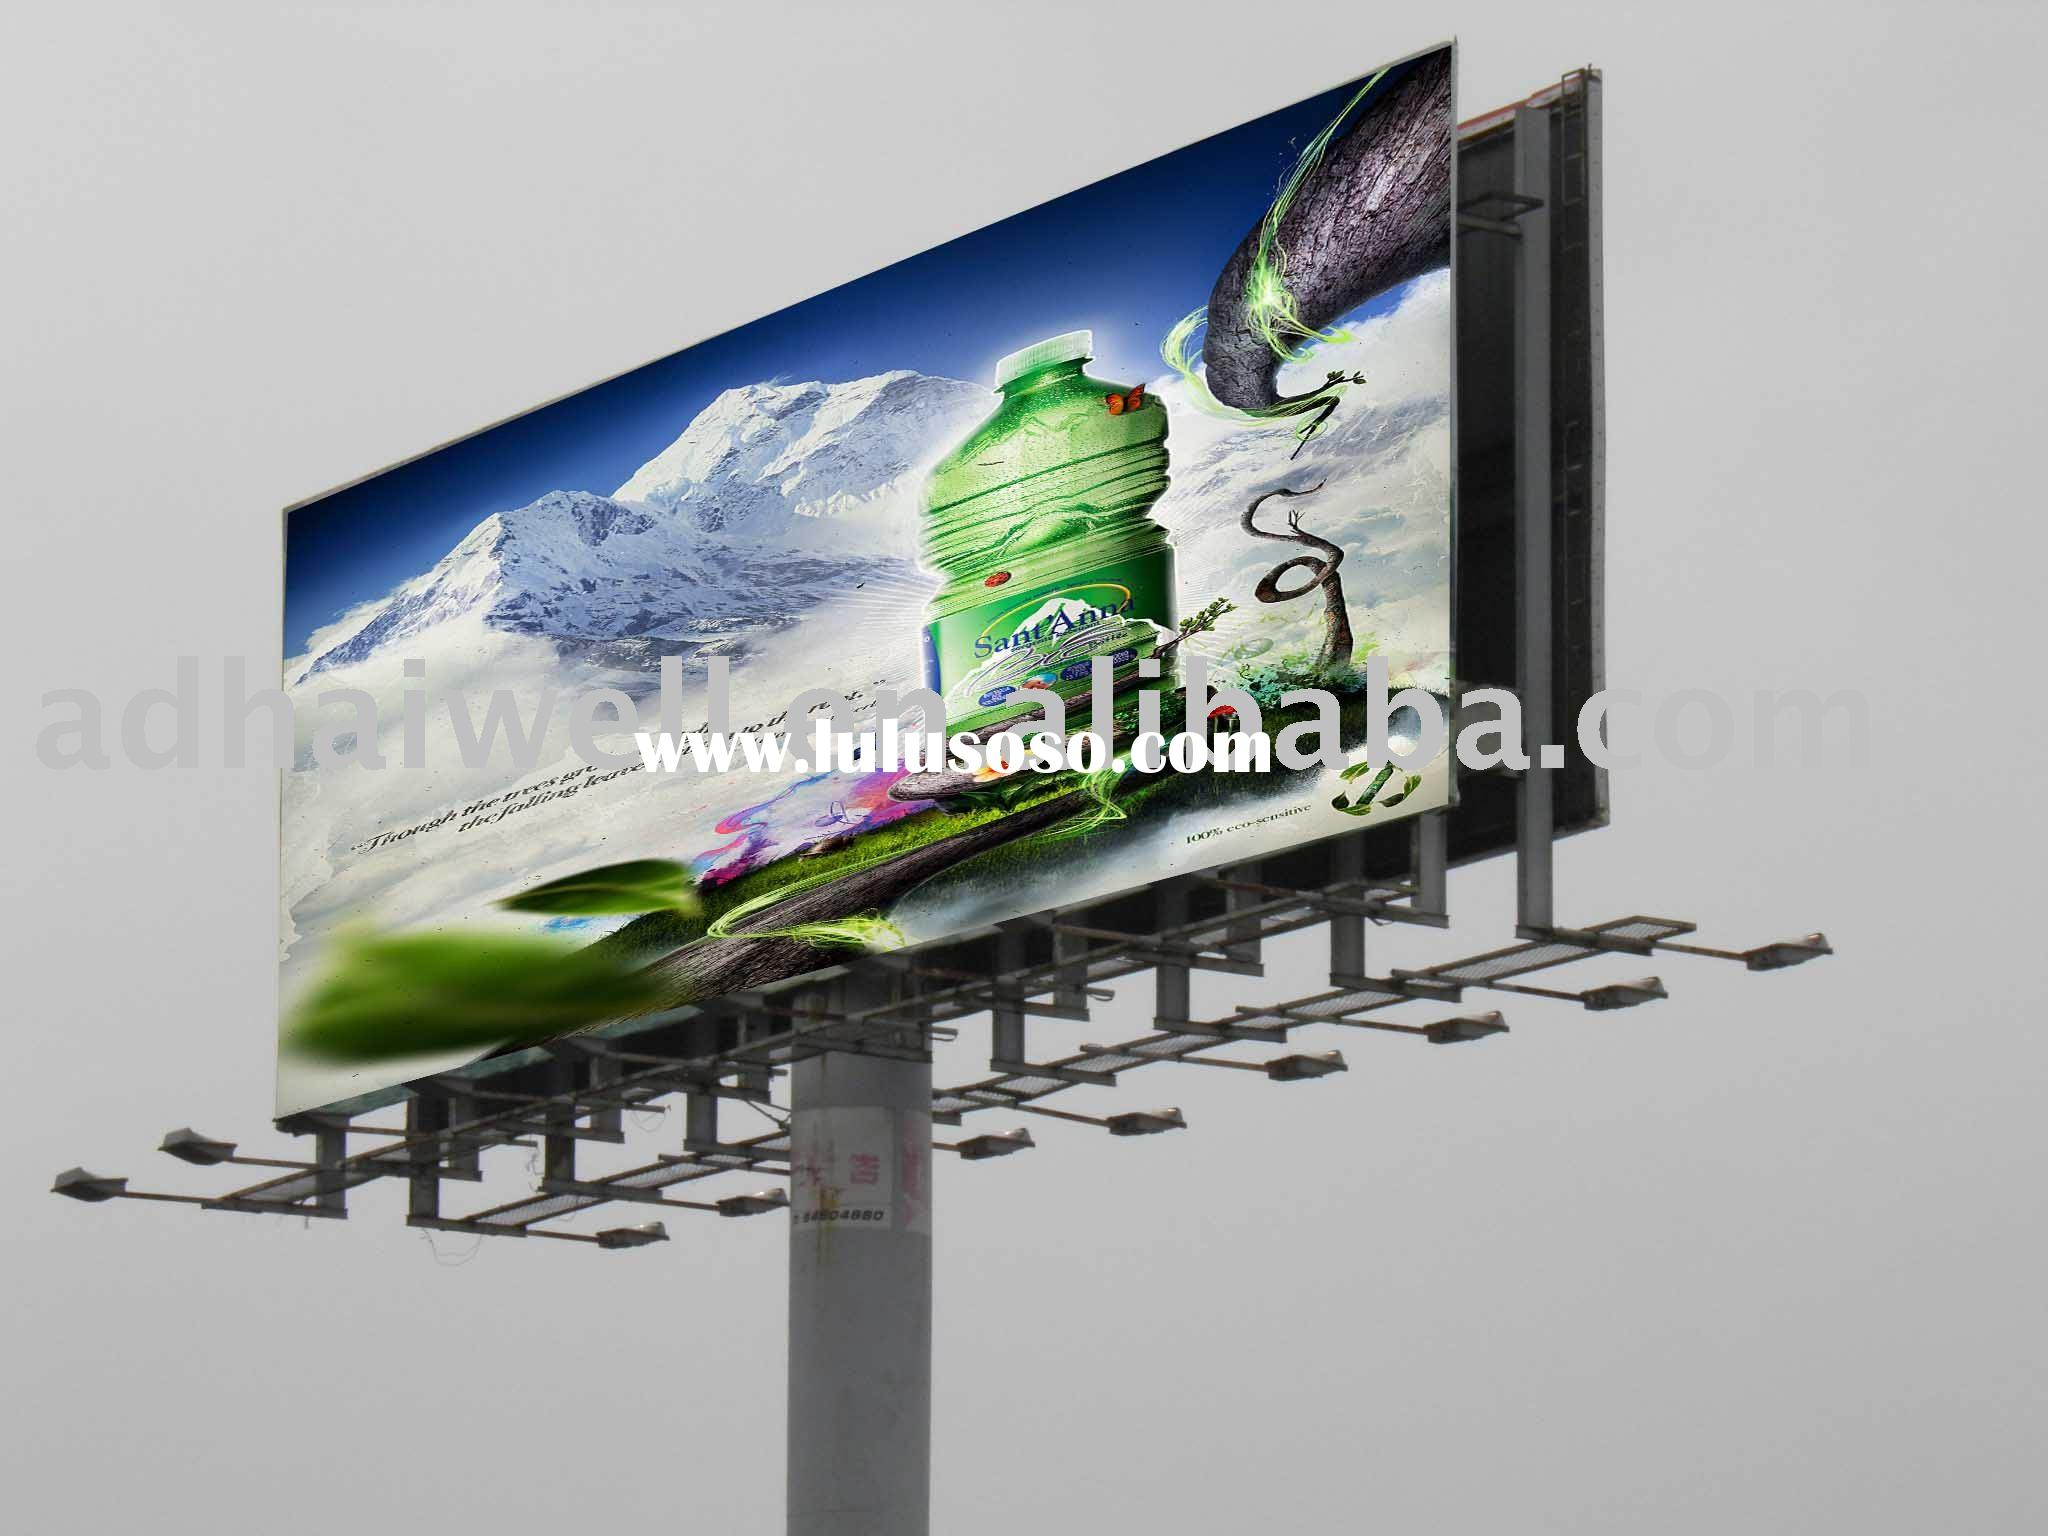 Highway Billboard Advertising Display